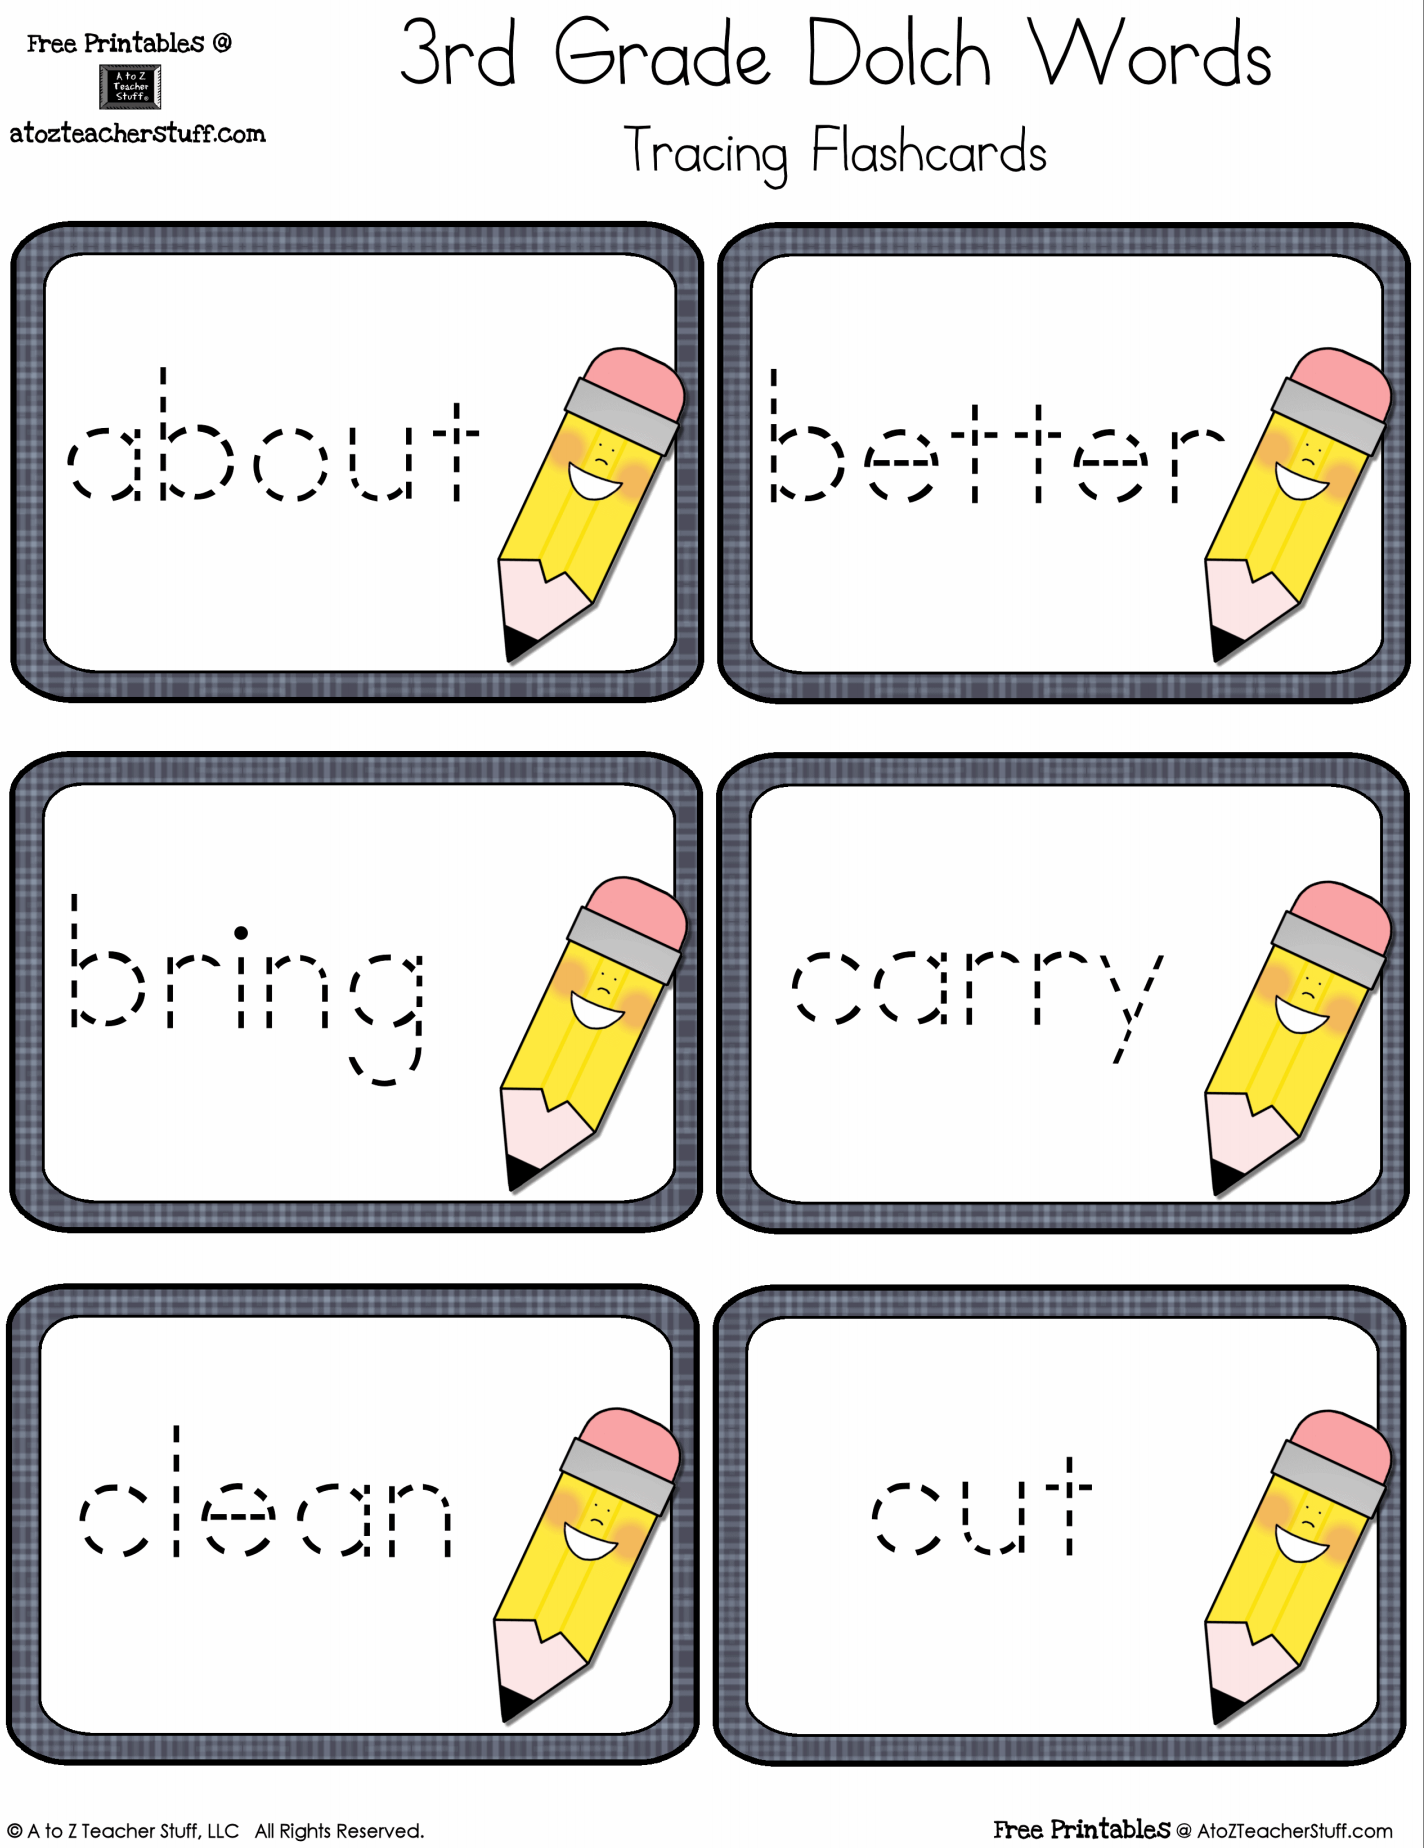 photo regarding Printable Sight Word Cards named 3rd Quality Dolch Sight Phrases Tracing Flashcards A towards Z